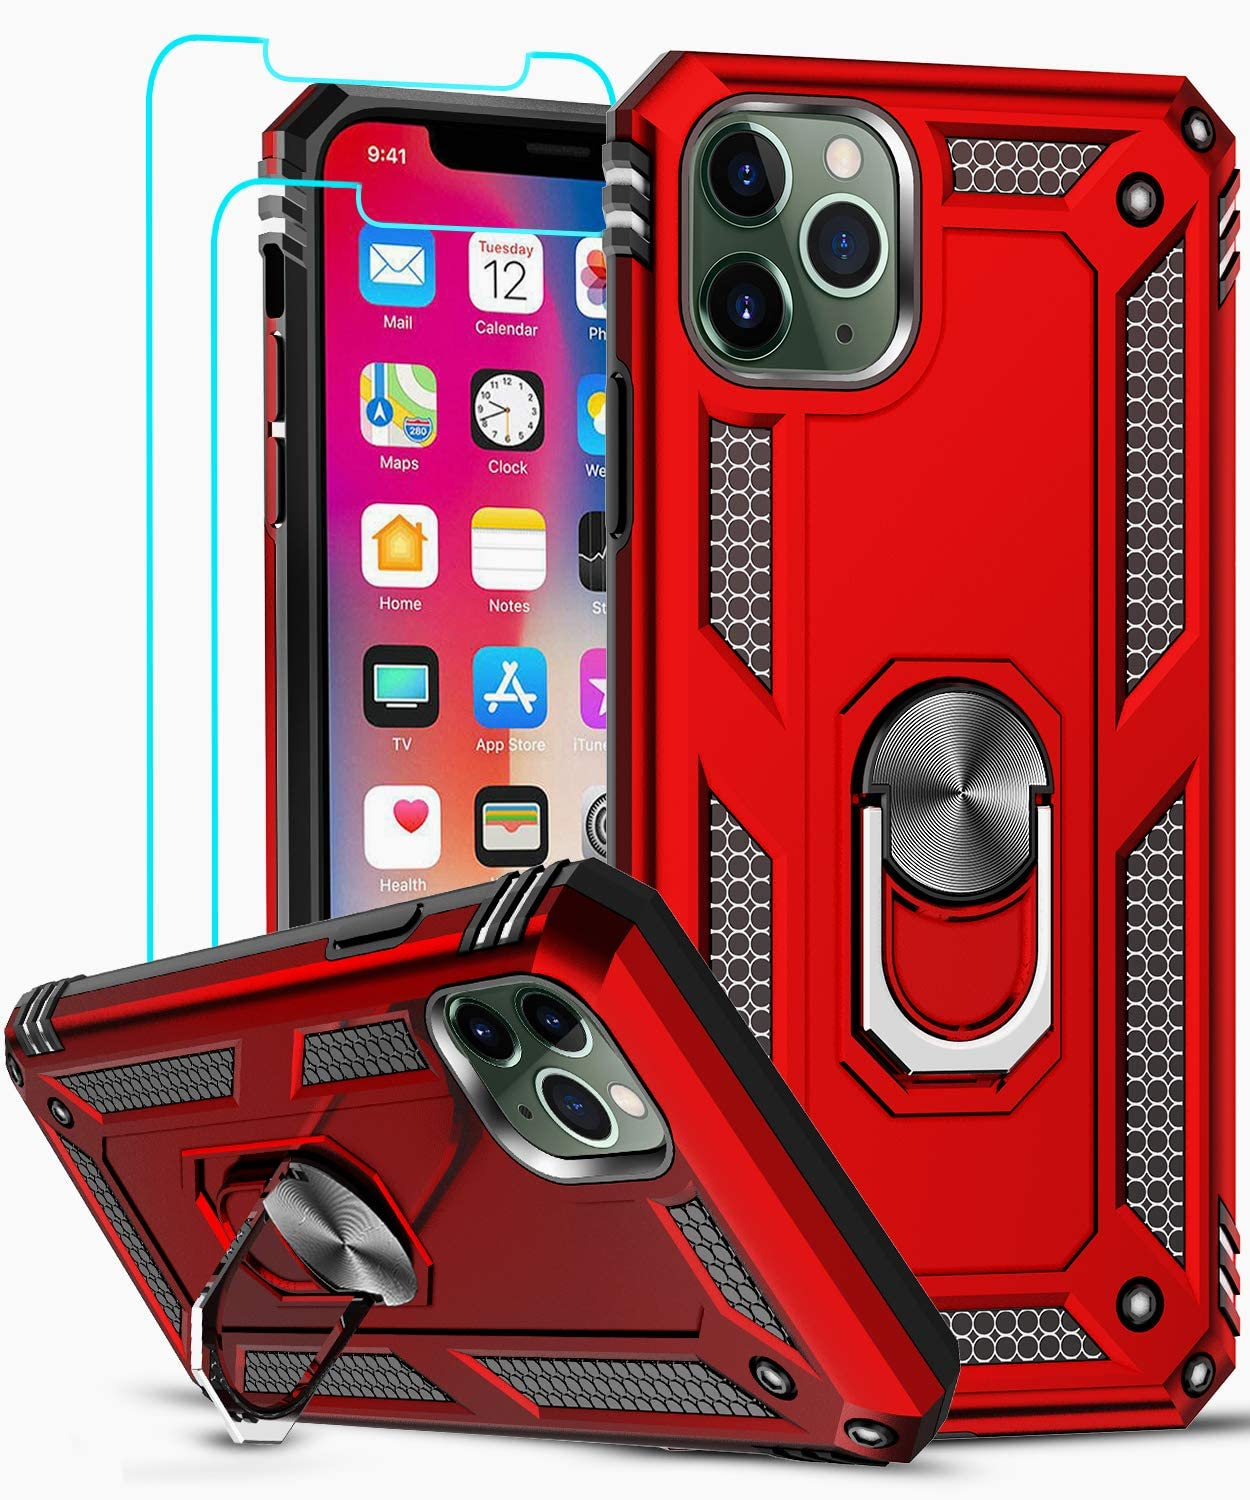 iPhone 11 Pro Max Case, iPhone 11 ProMax Case with Tempered Glass Screen Protector [2 Pack], LeYi [Military Grade] Phone Case Cover with Ring Kickstand for Apple iPhone 11 Pro Max 6.5 inch, Red